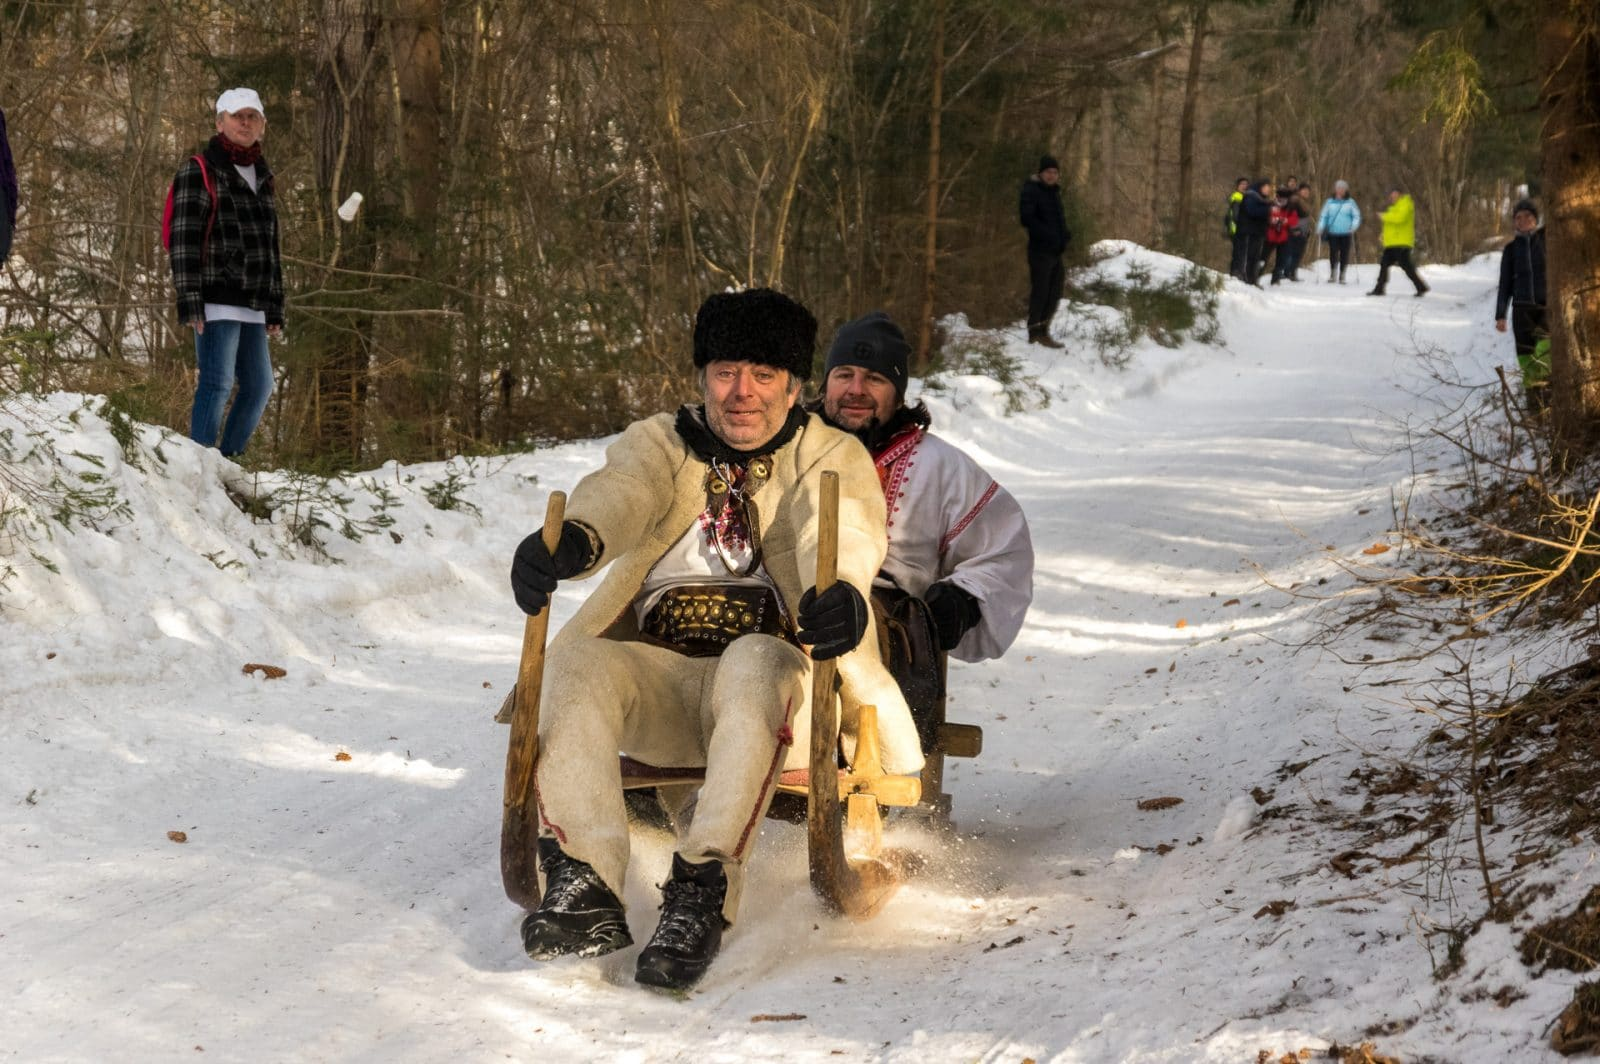 Krnohy : The Traditional Sledge Races of Slovakia